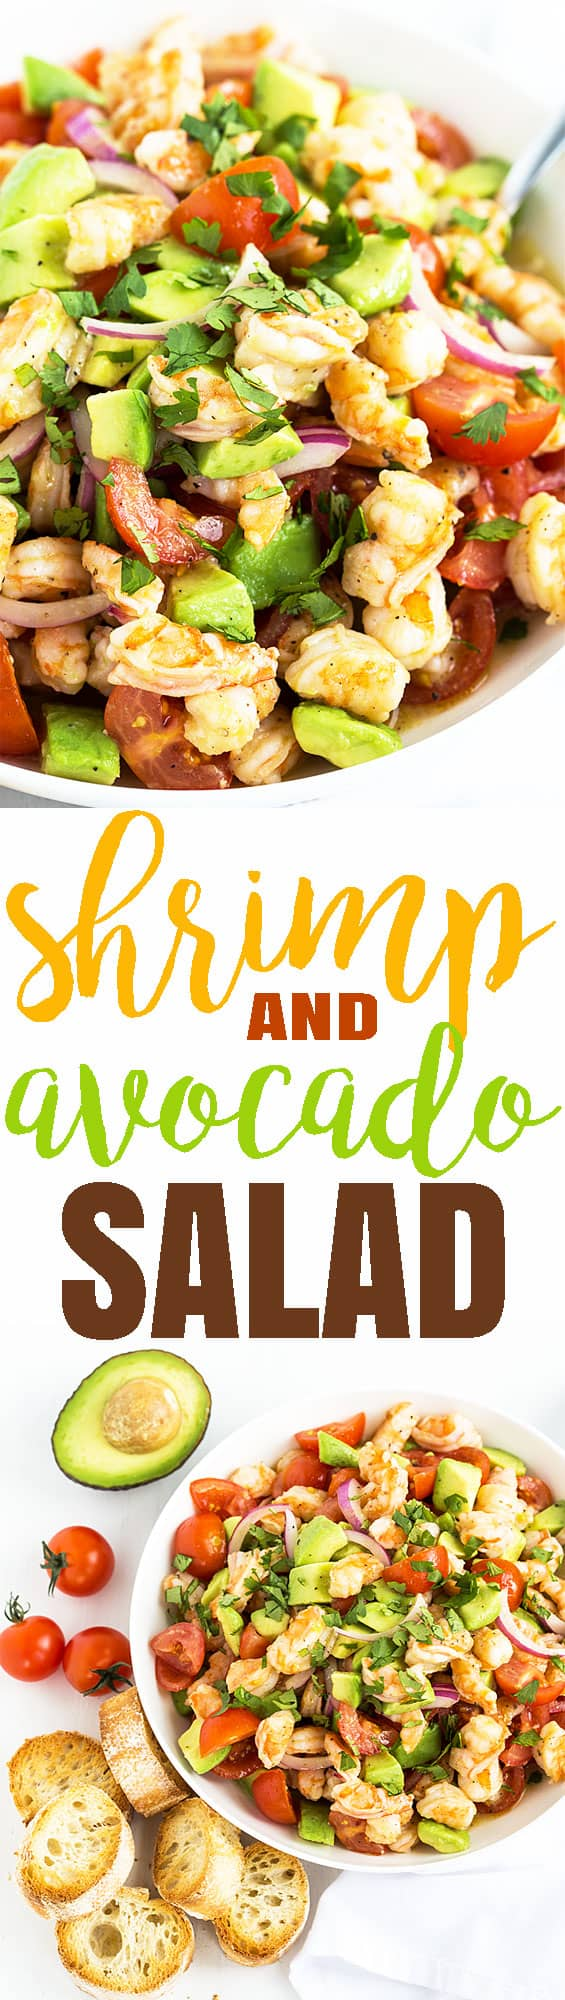 A two image vertical collage of shrimp and avocado salad with overlay text in the center.